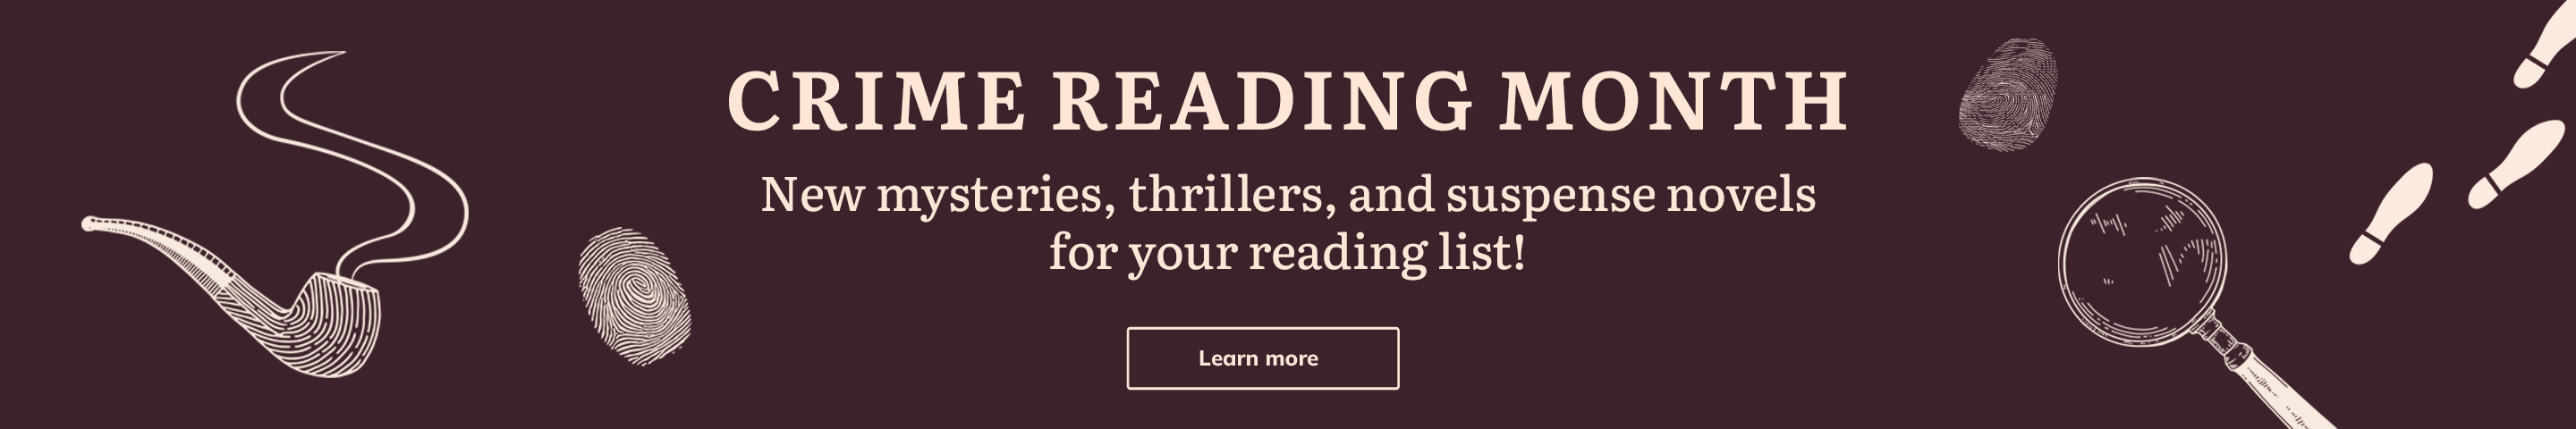 New mysteries, thrillers, and suspense novels for your reading list!